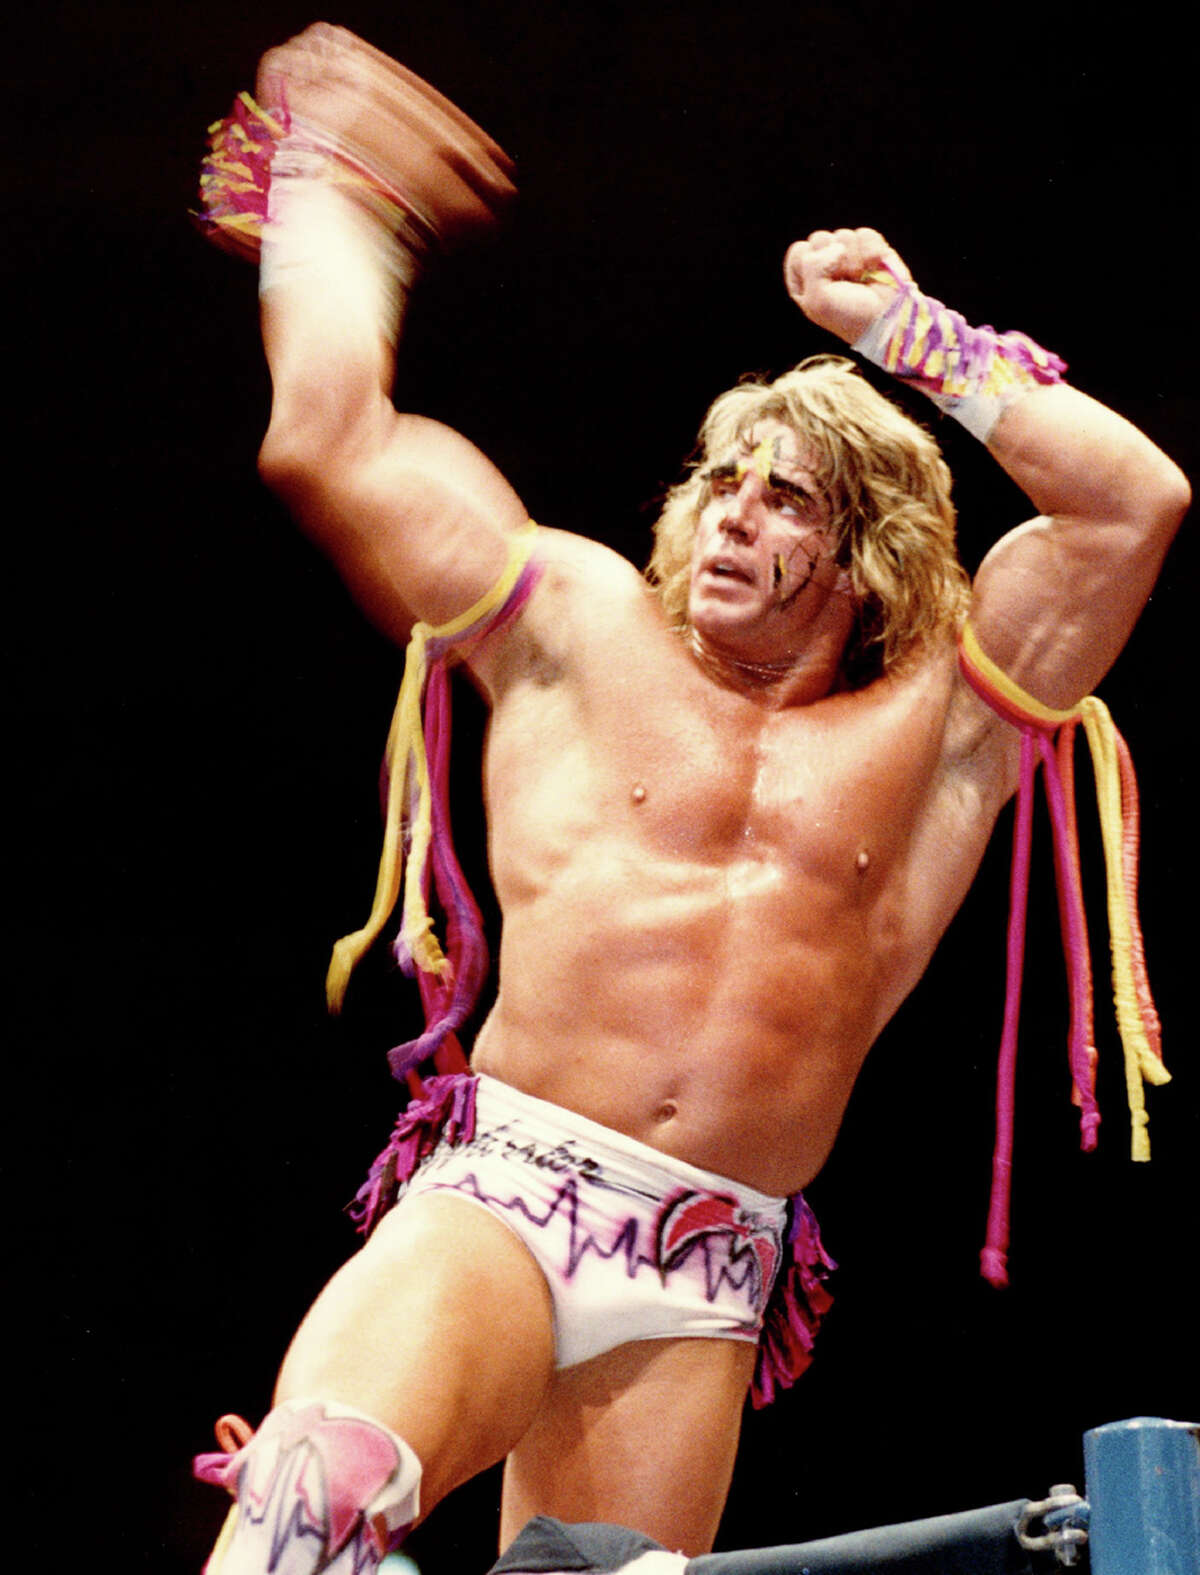 The Ultimate Warrior, born James Hellwig, died April 8, 2014 at the age of 54 from a massive heart atttack. His death came just days after being inducted into the WWE Hall of Fame. See these other pro wrestlers who died at an early age along with the details of each wrestler's passing.